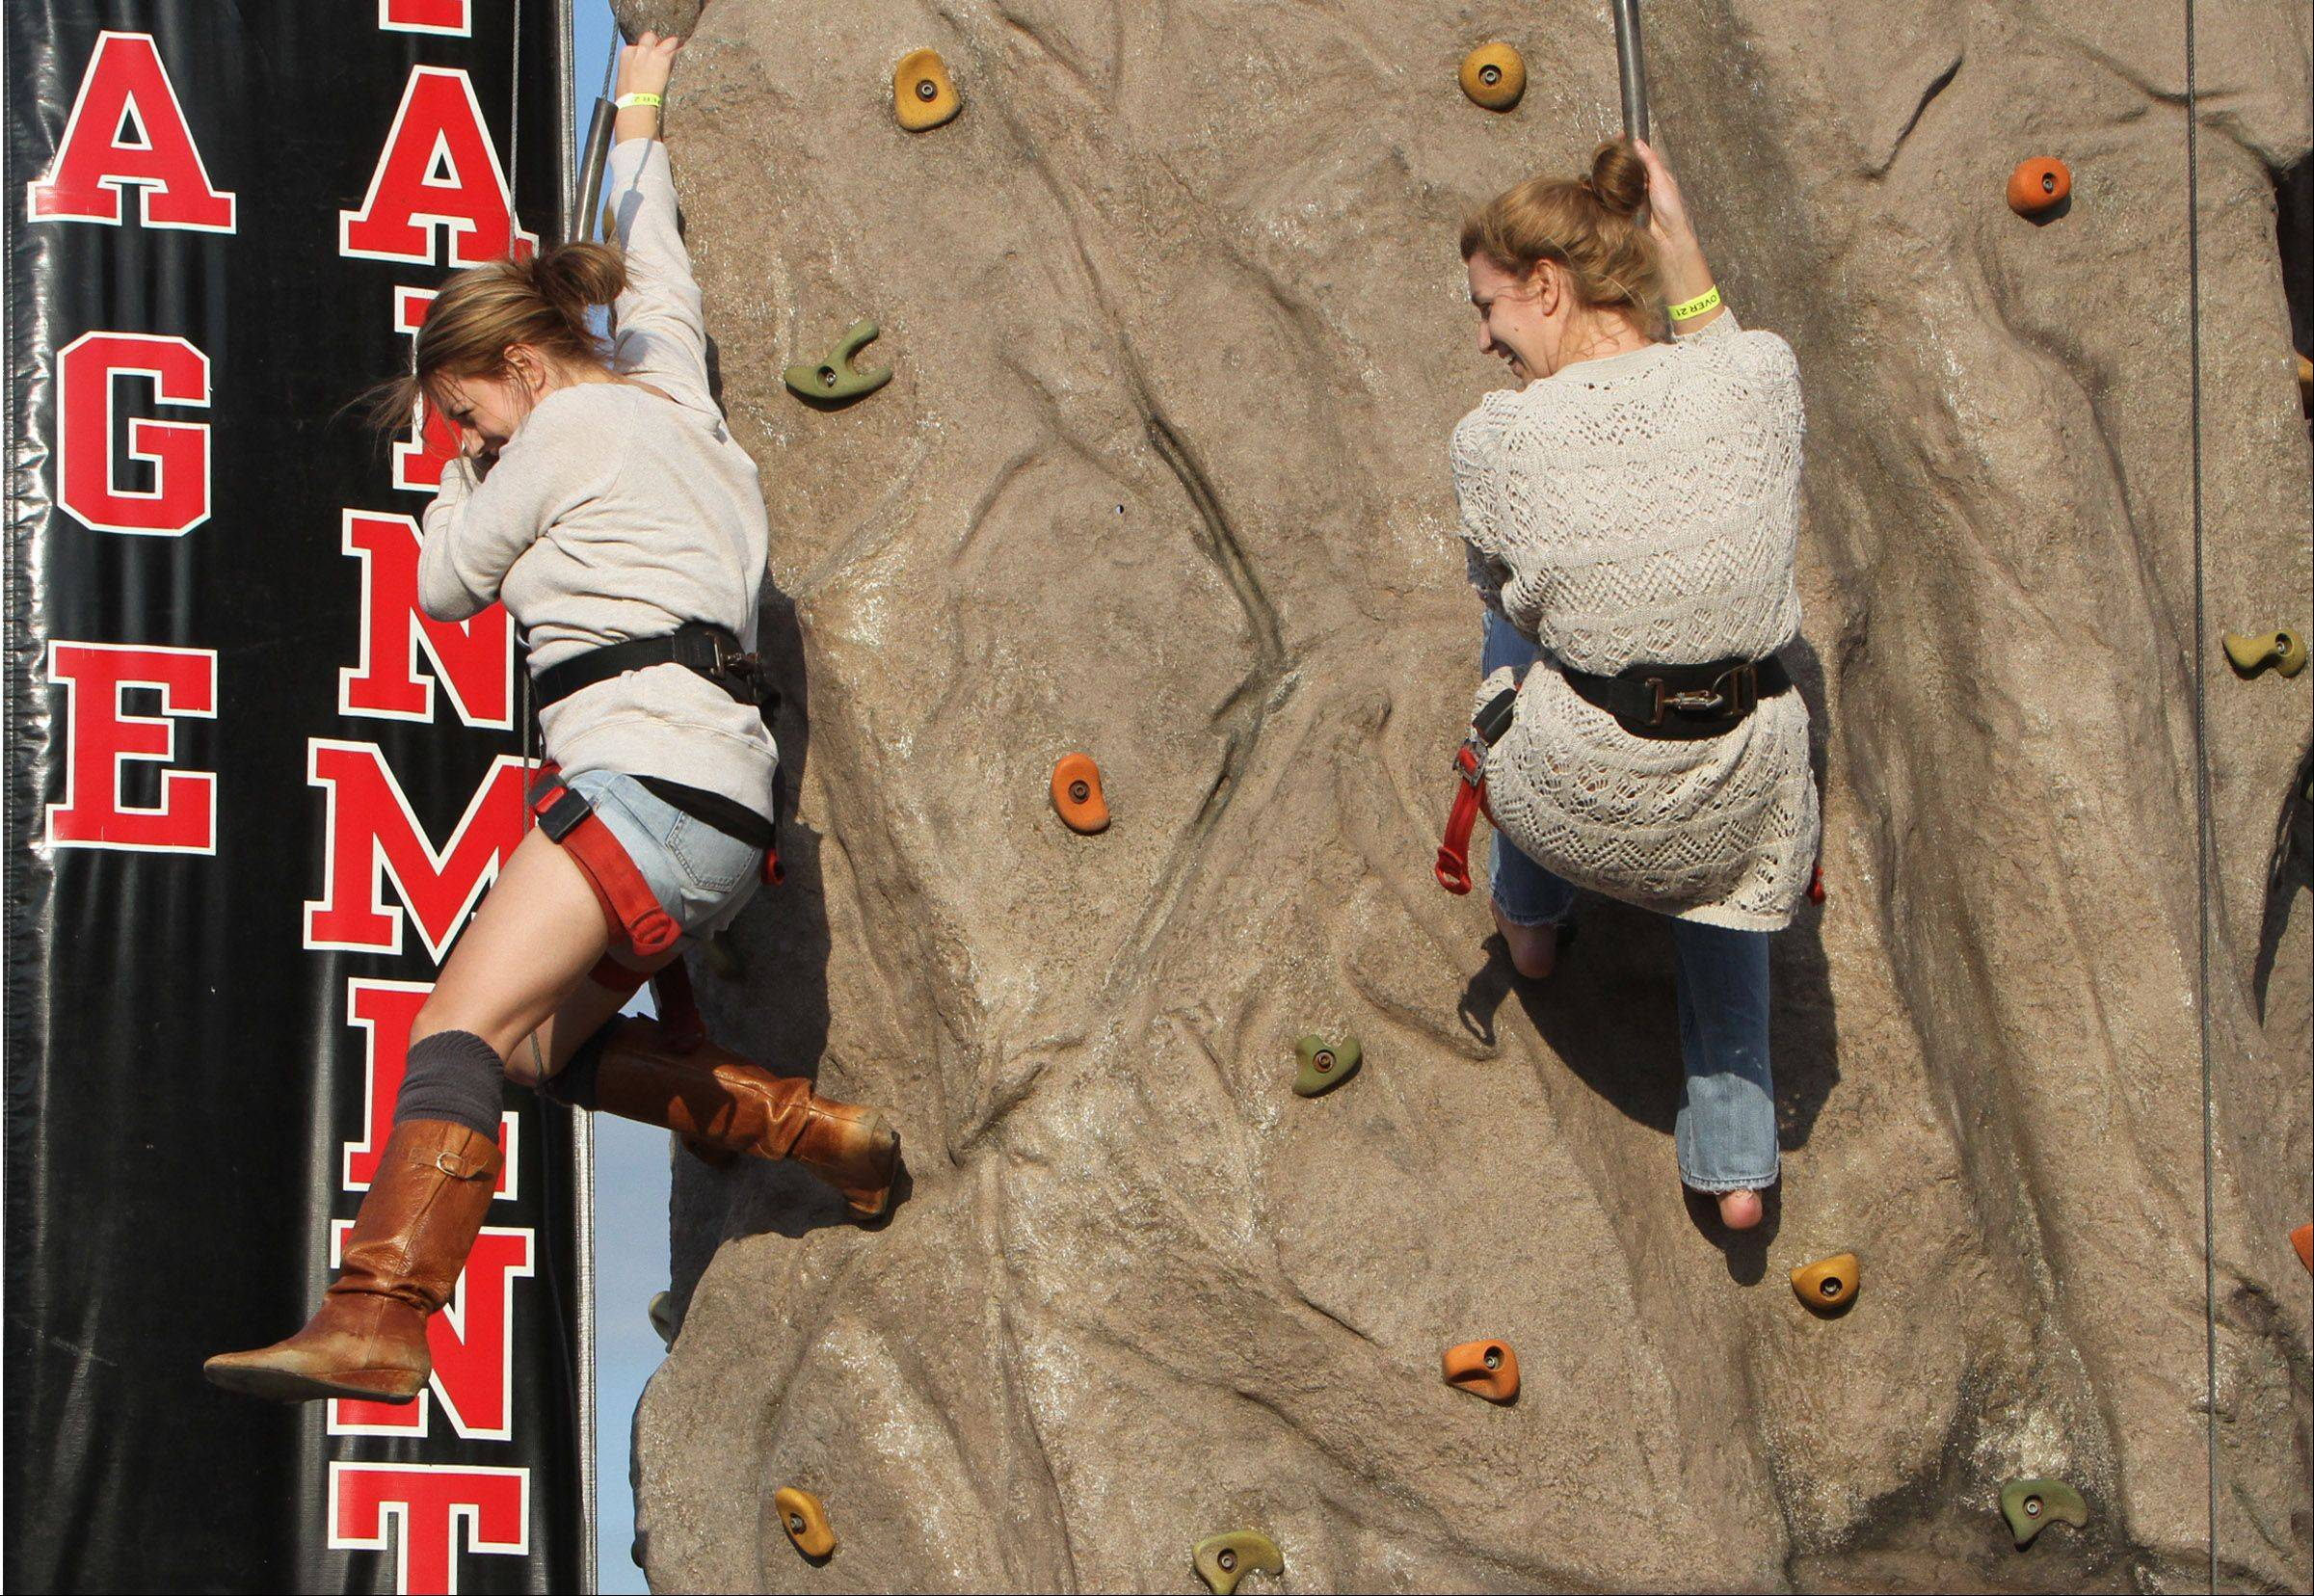 Sisters Nicki and Ellie Fisher, both of West Dundee, compete with each other to make it to the top of the climbing all at West Dundee Heritage Fest last year.